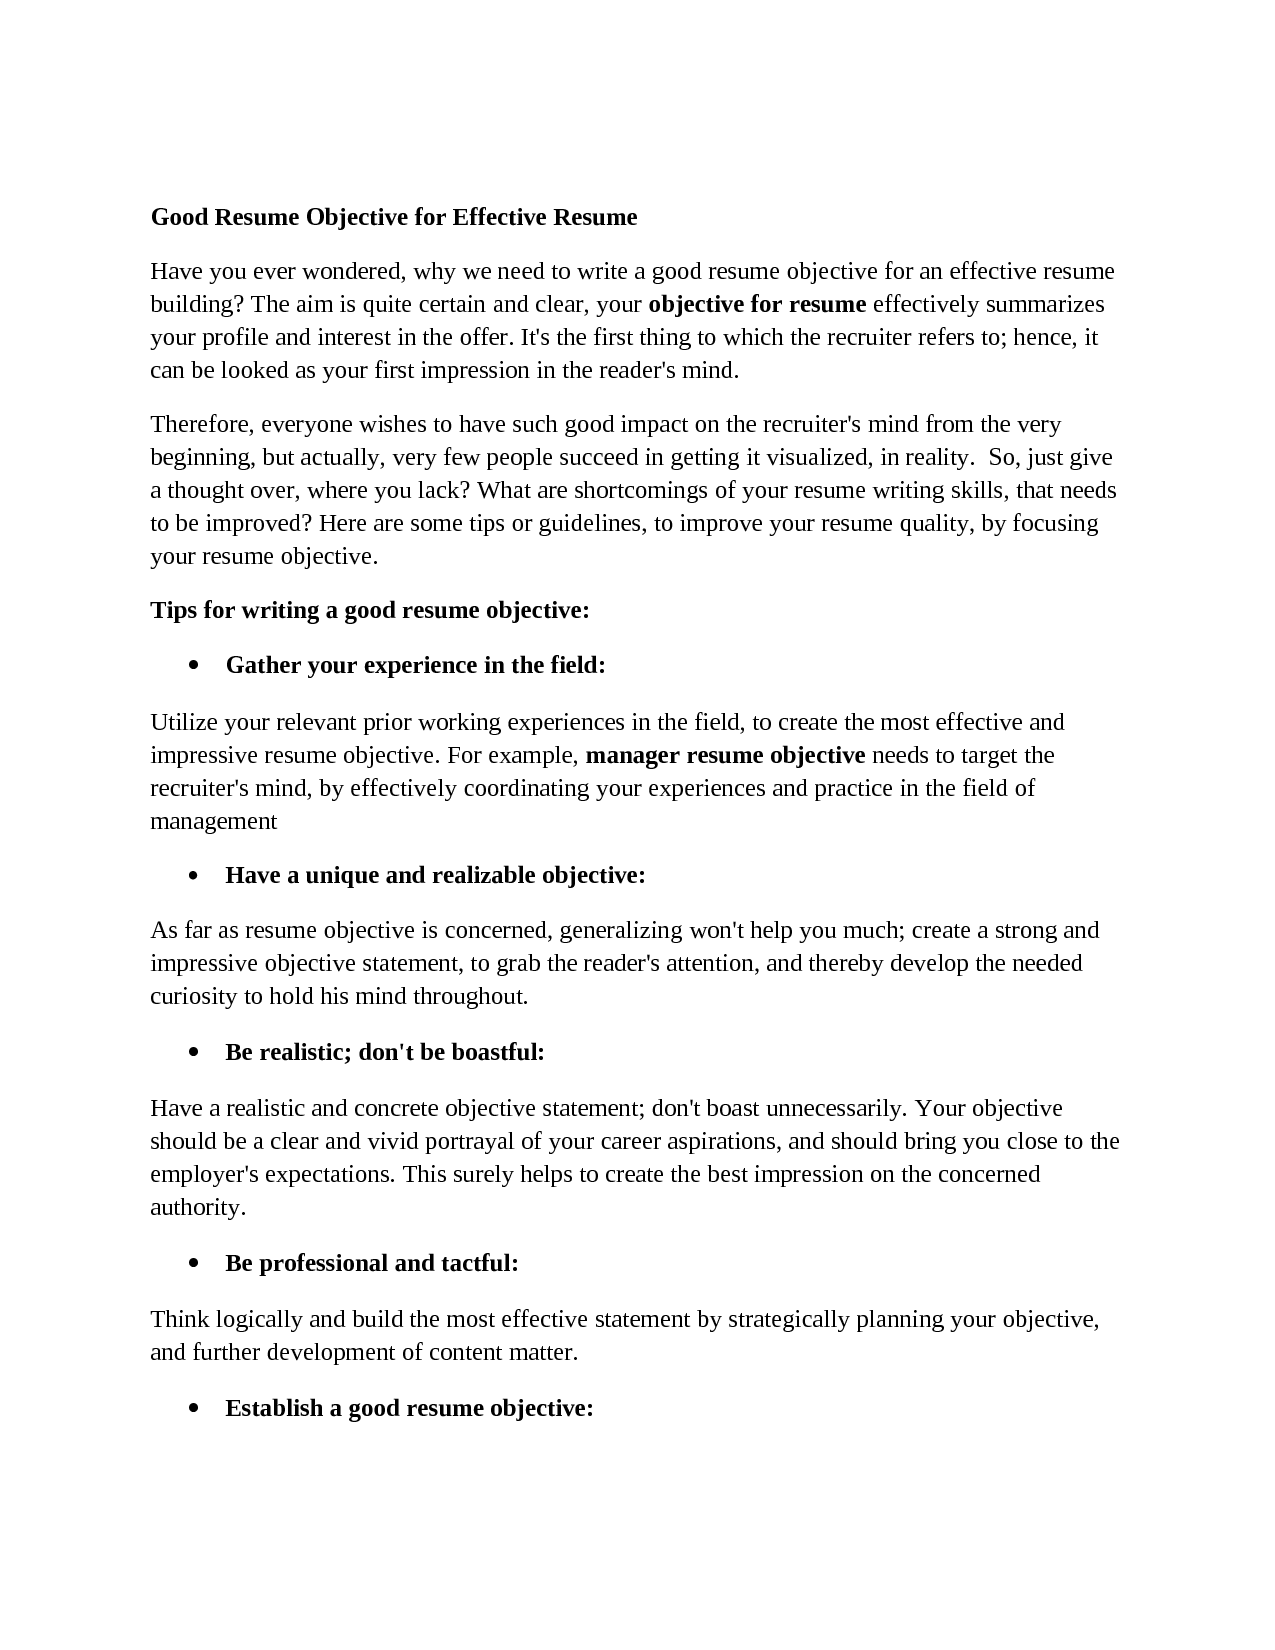 career objectives for resumes good resume objectives - Strong Resume Objectives